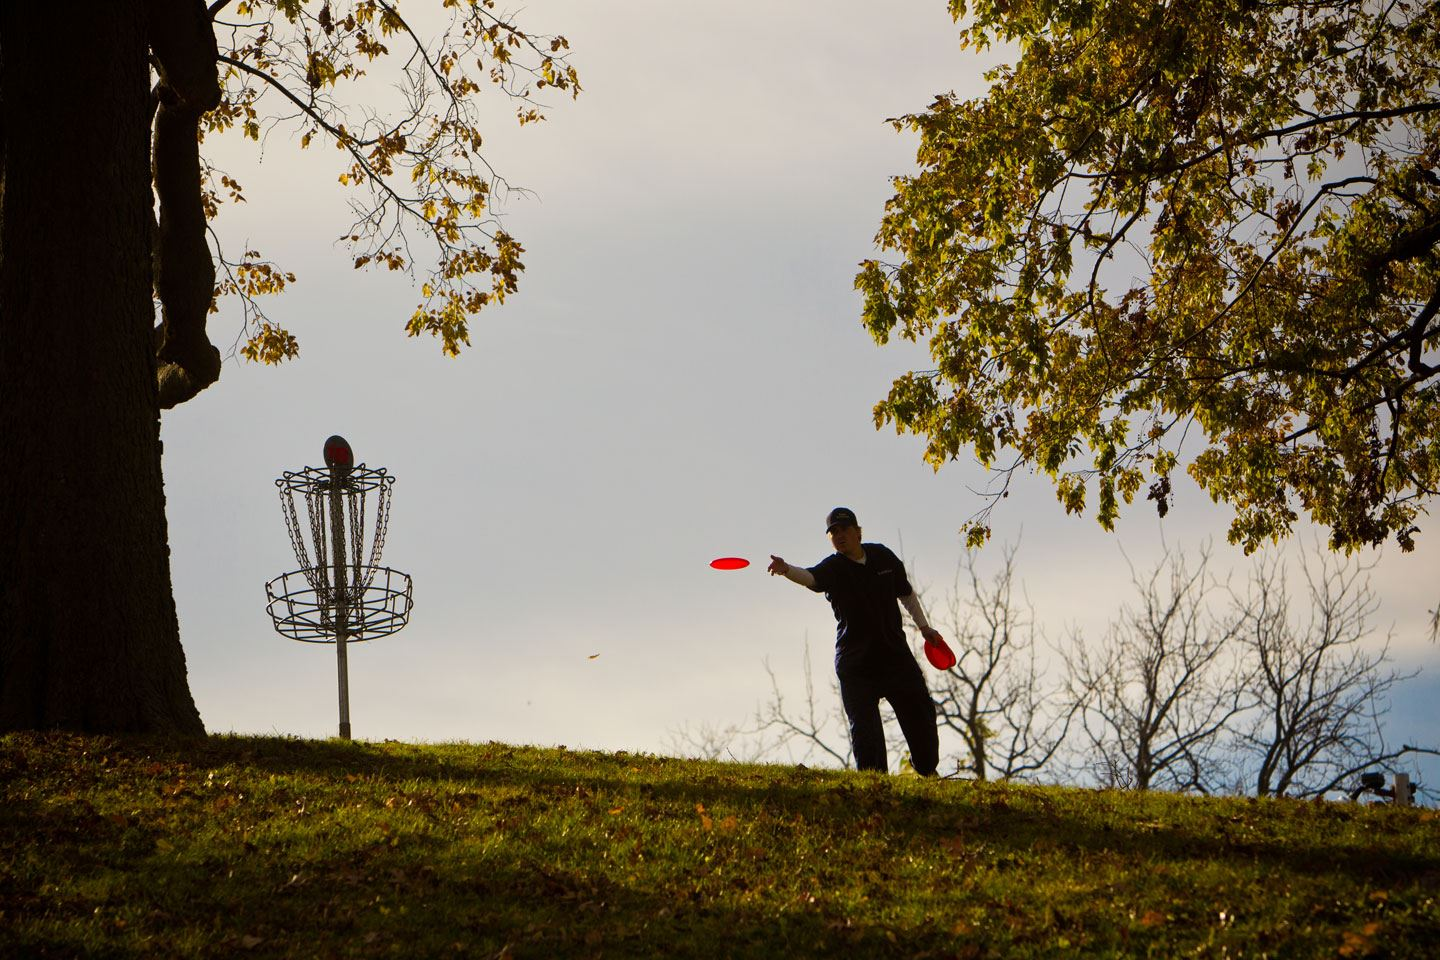 Park goer playing disc golf